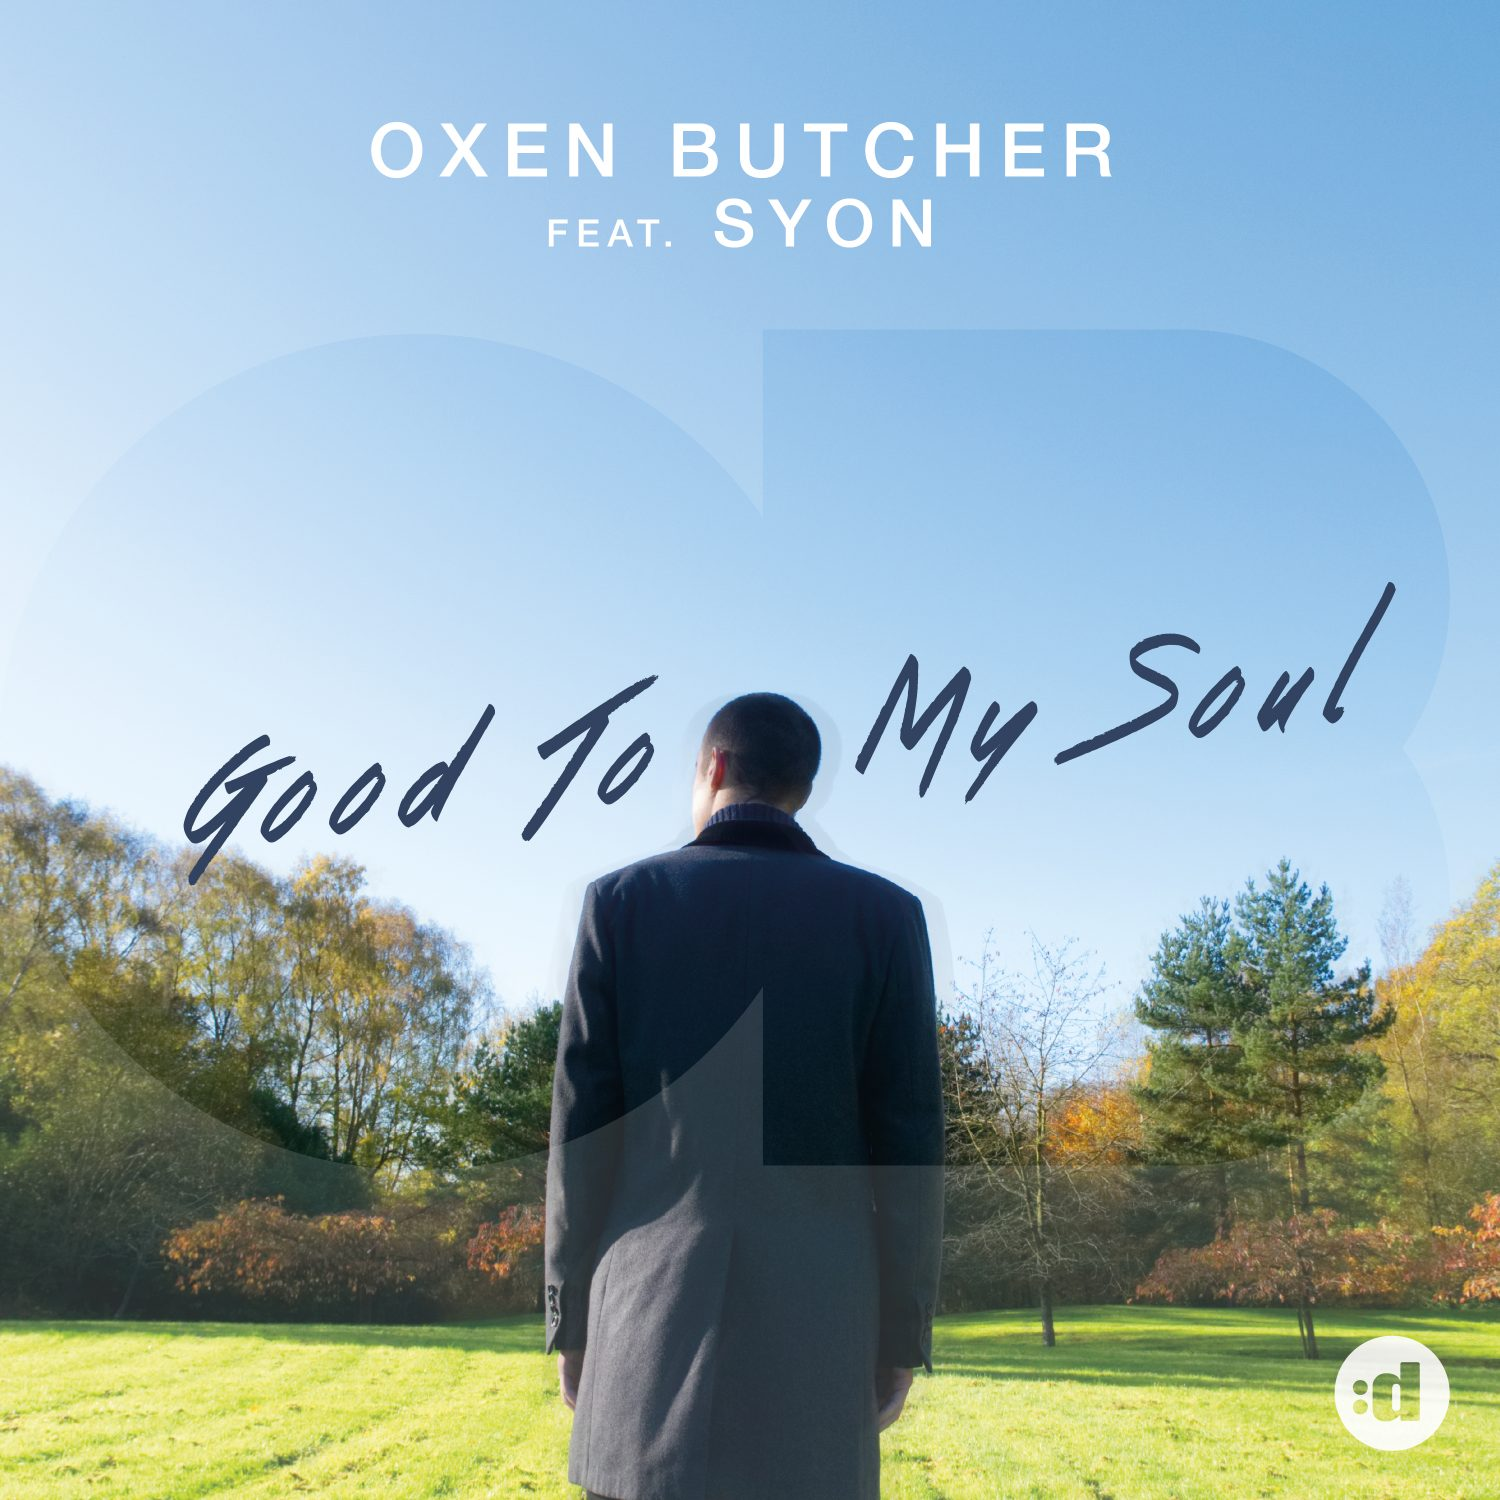 Oxen Butcher Good To My Soul Syon